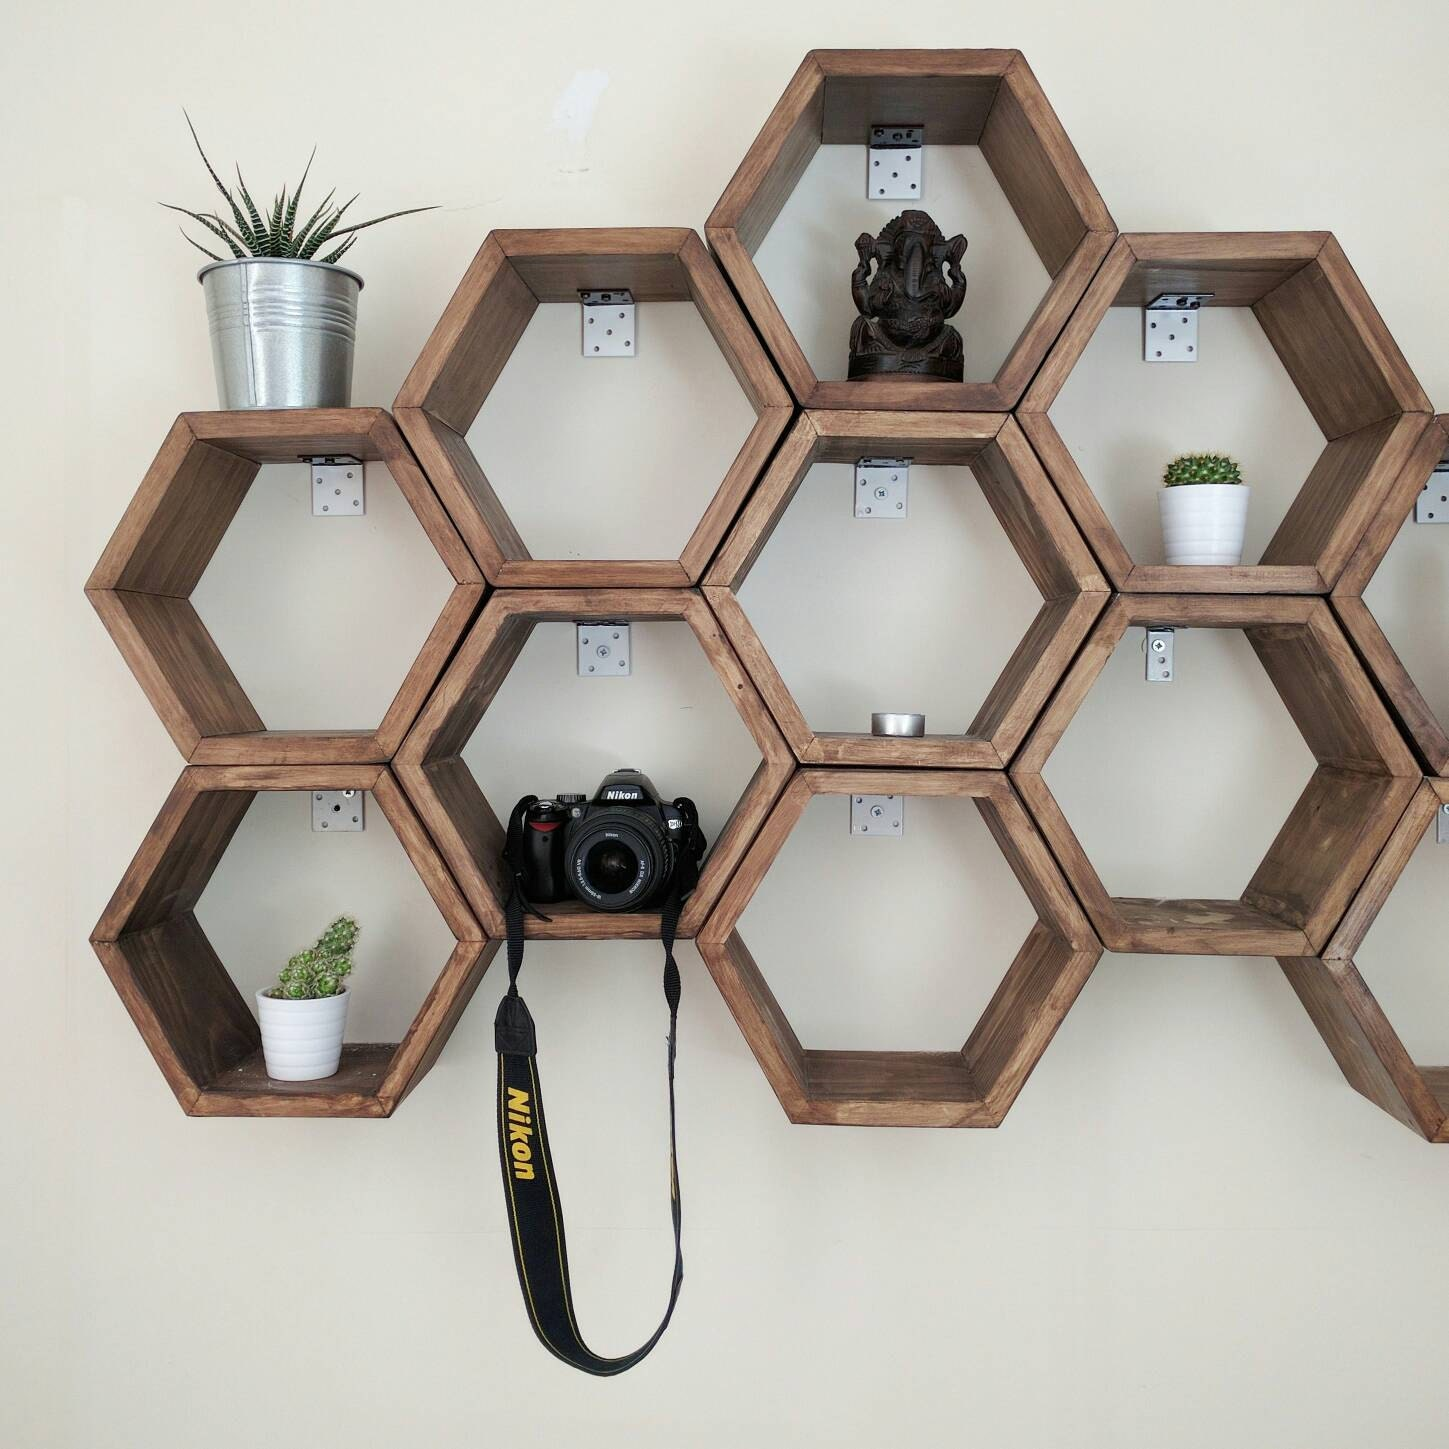 Honeycomb Hexagon Shelves Handmade In The Uk Pine Wood